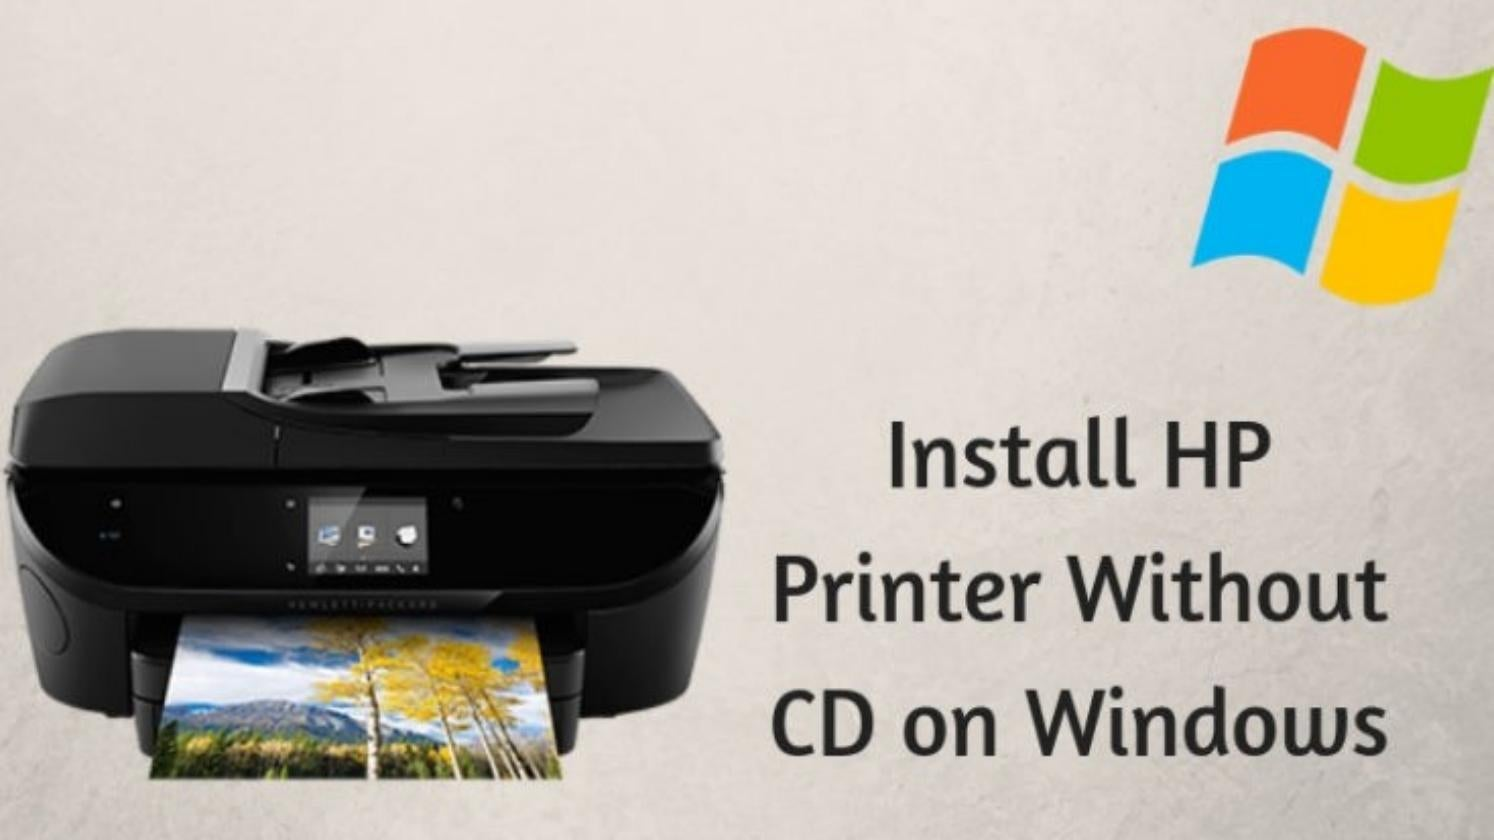 How to Install HP Printer Without CD on Windows? by Jennifer